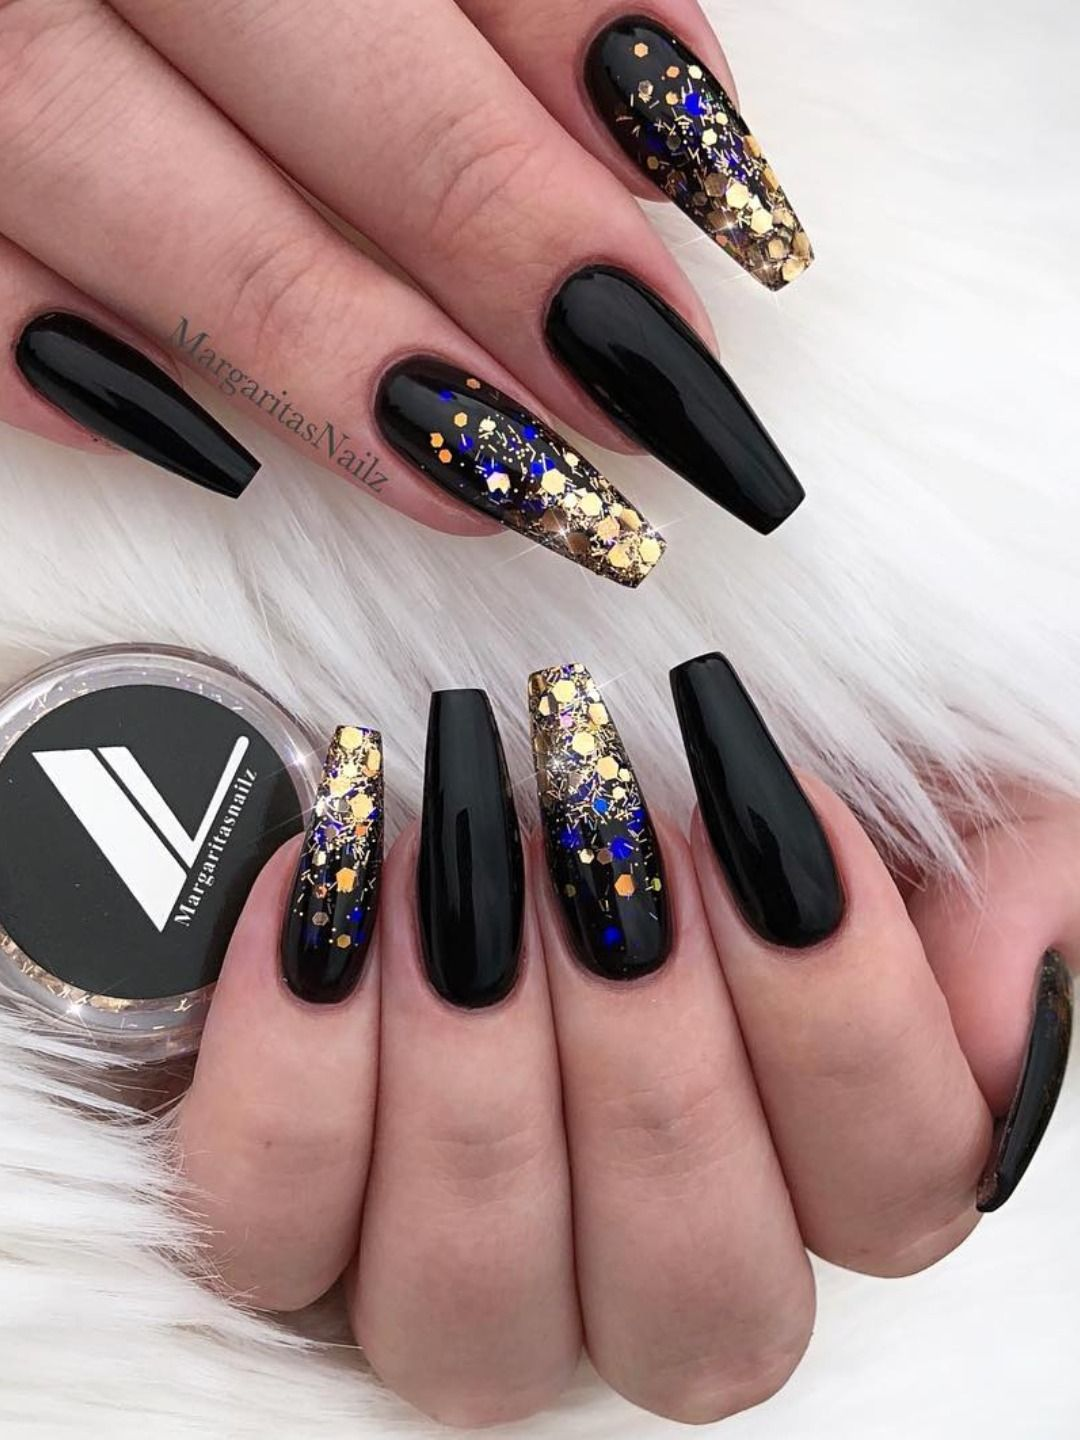 The Most Beautiful Black Winter Nails Ideas Black Gold Nails Gold Nails Coffin Nails Designs